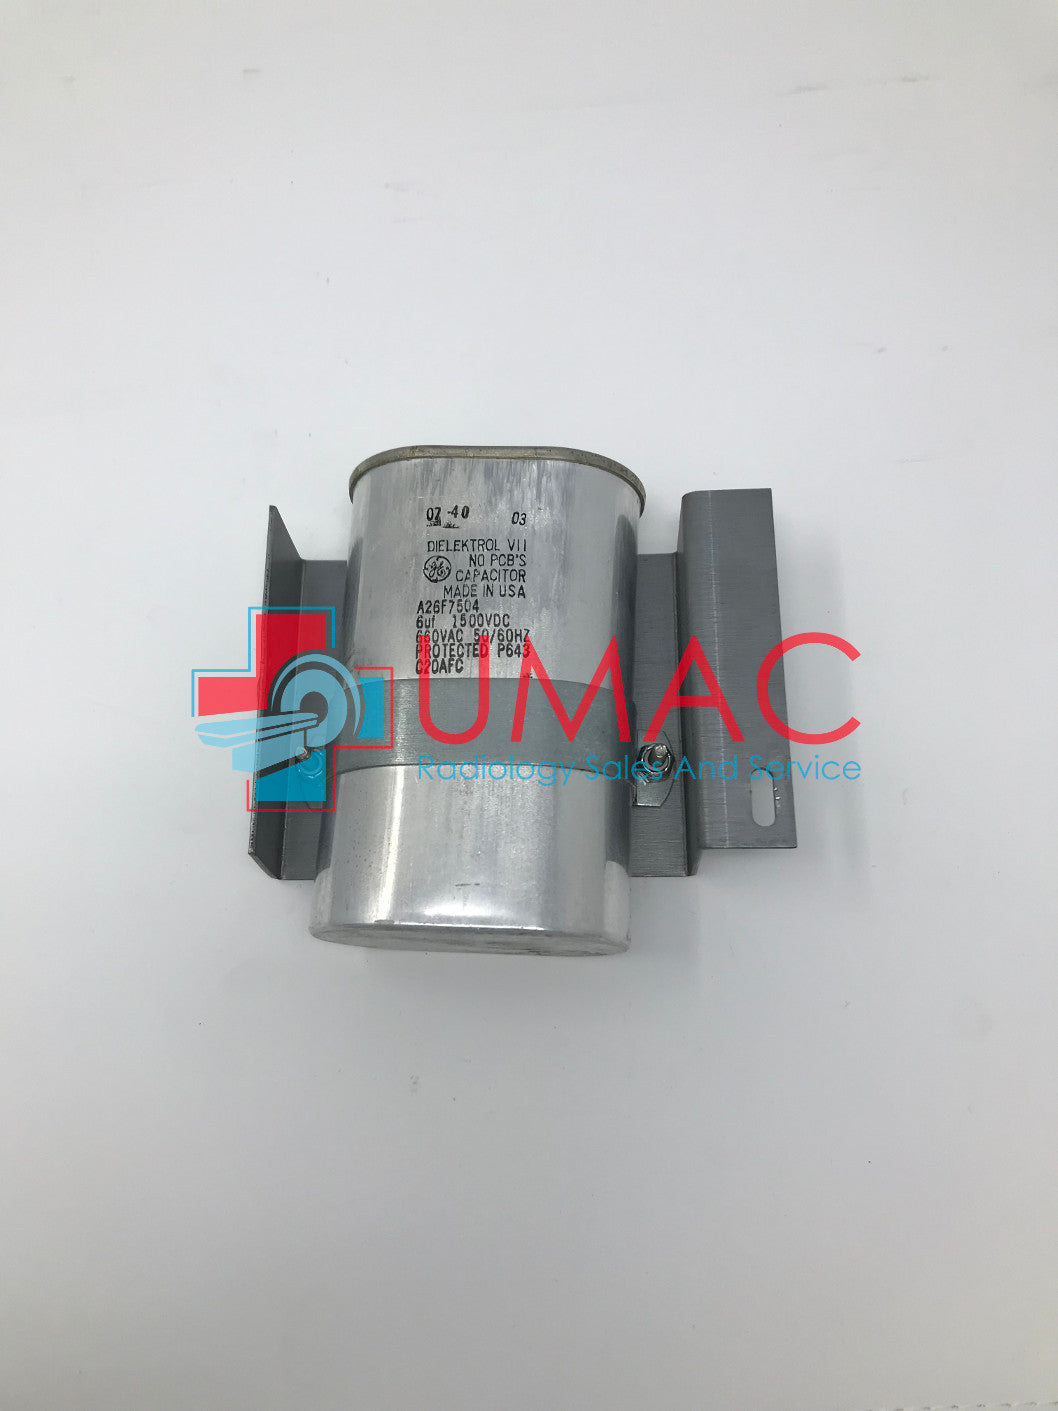 Hologic Dimensions Mammography A26F7504 GE Dielektrol VII Capacitor